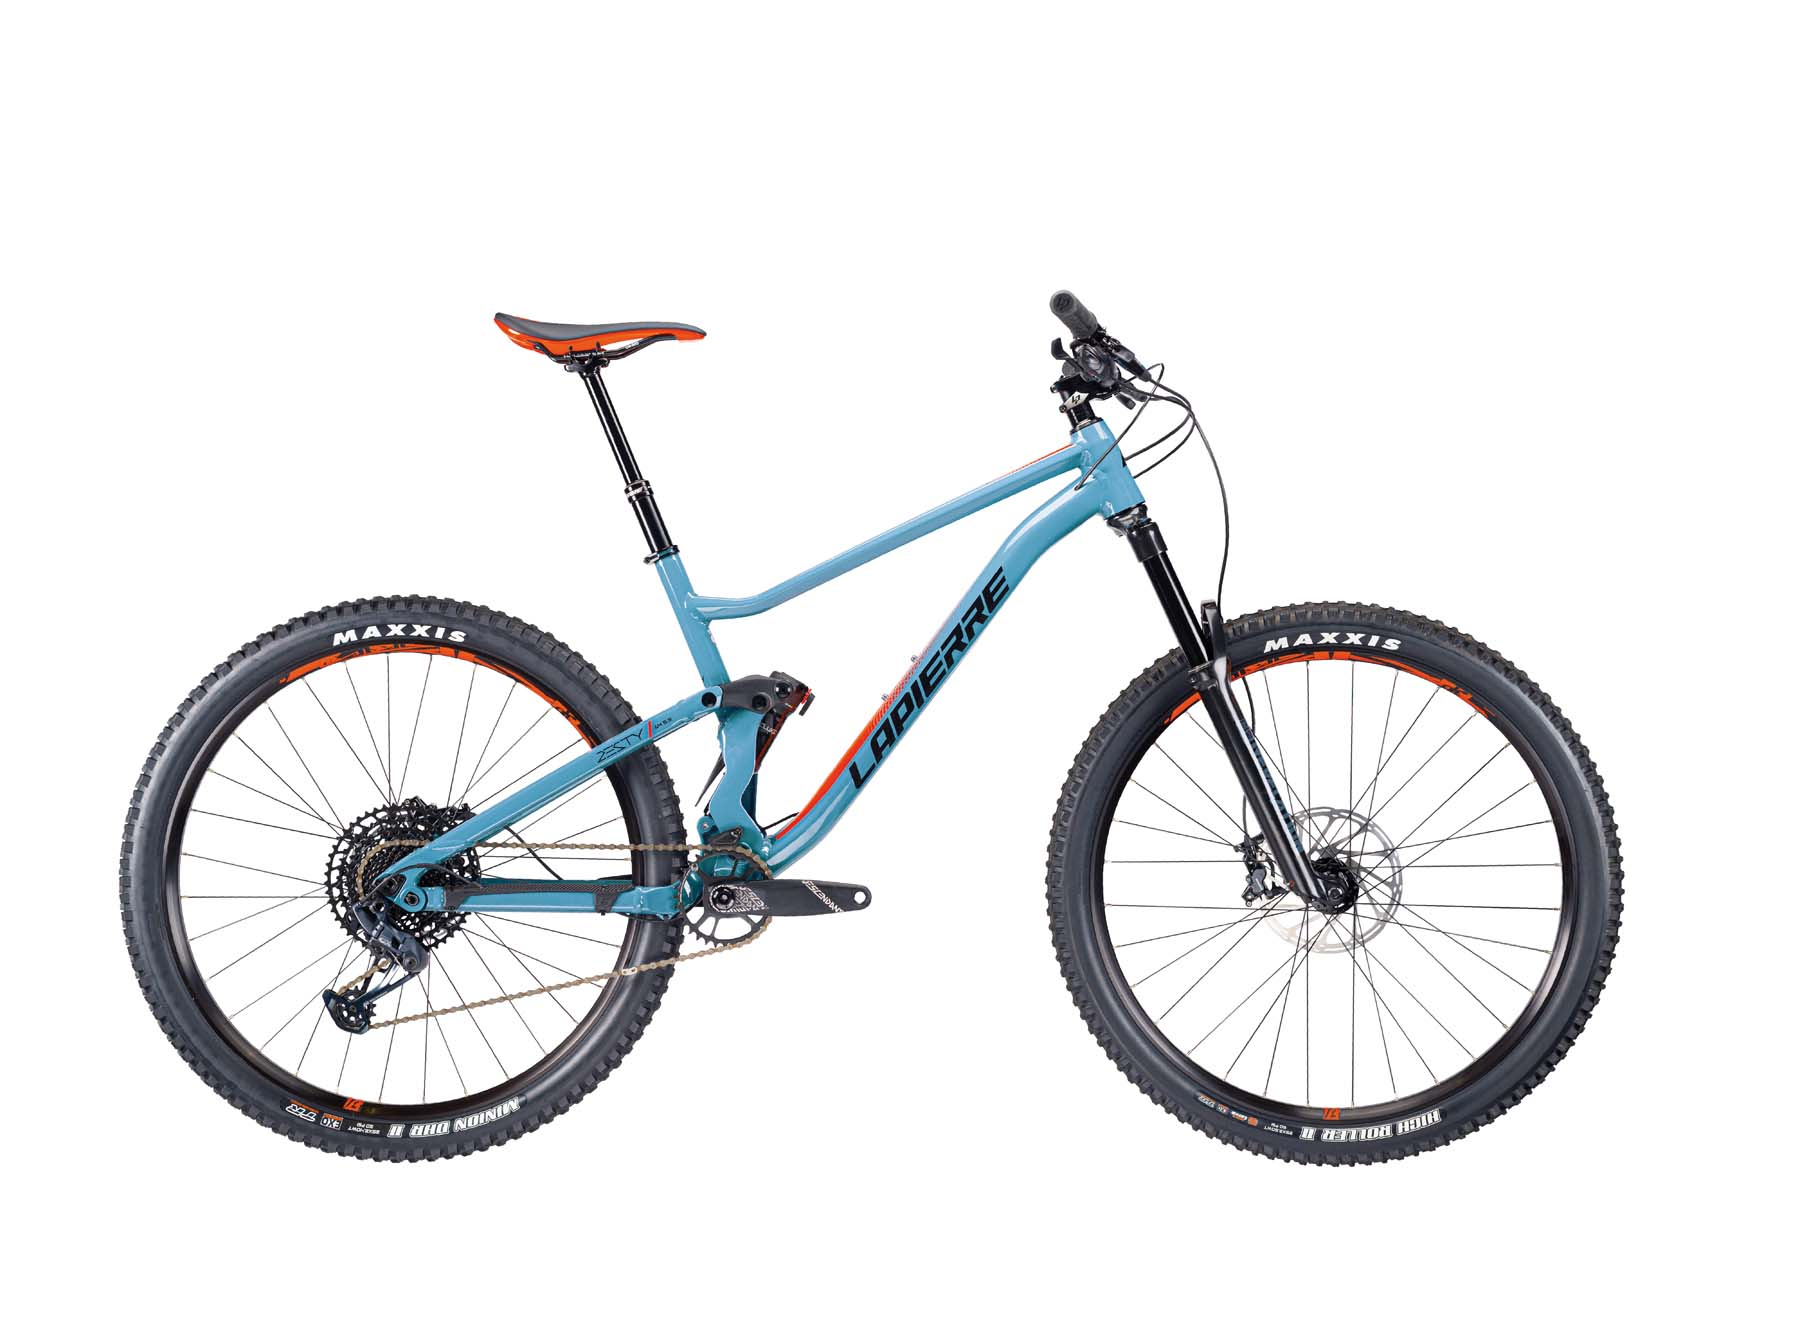 Lapierre Zesty AM 5.9 2021 All Mountain Bike 1